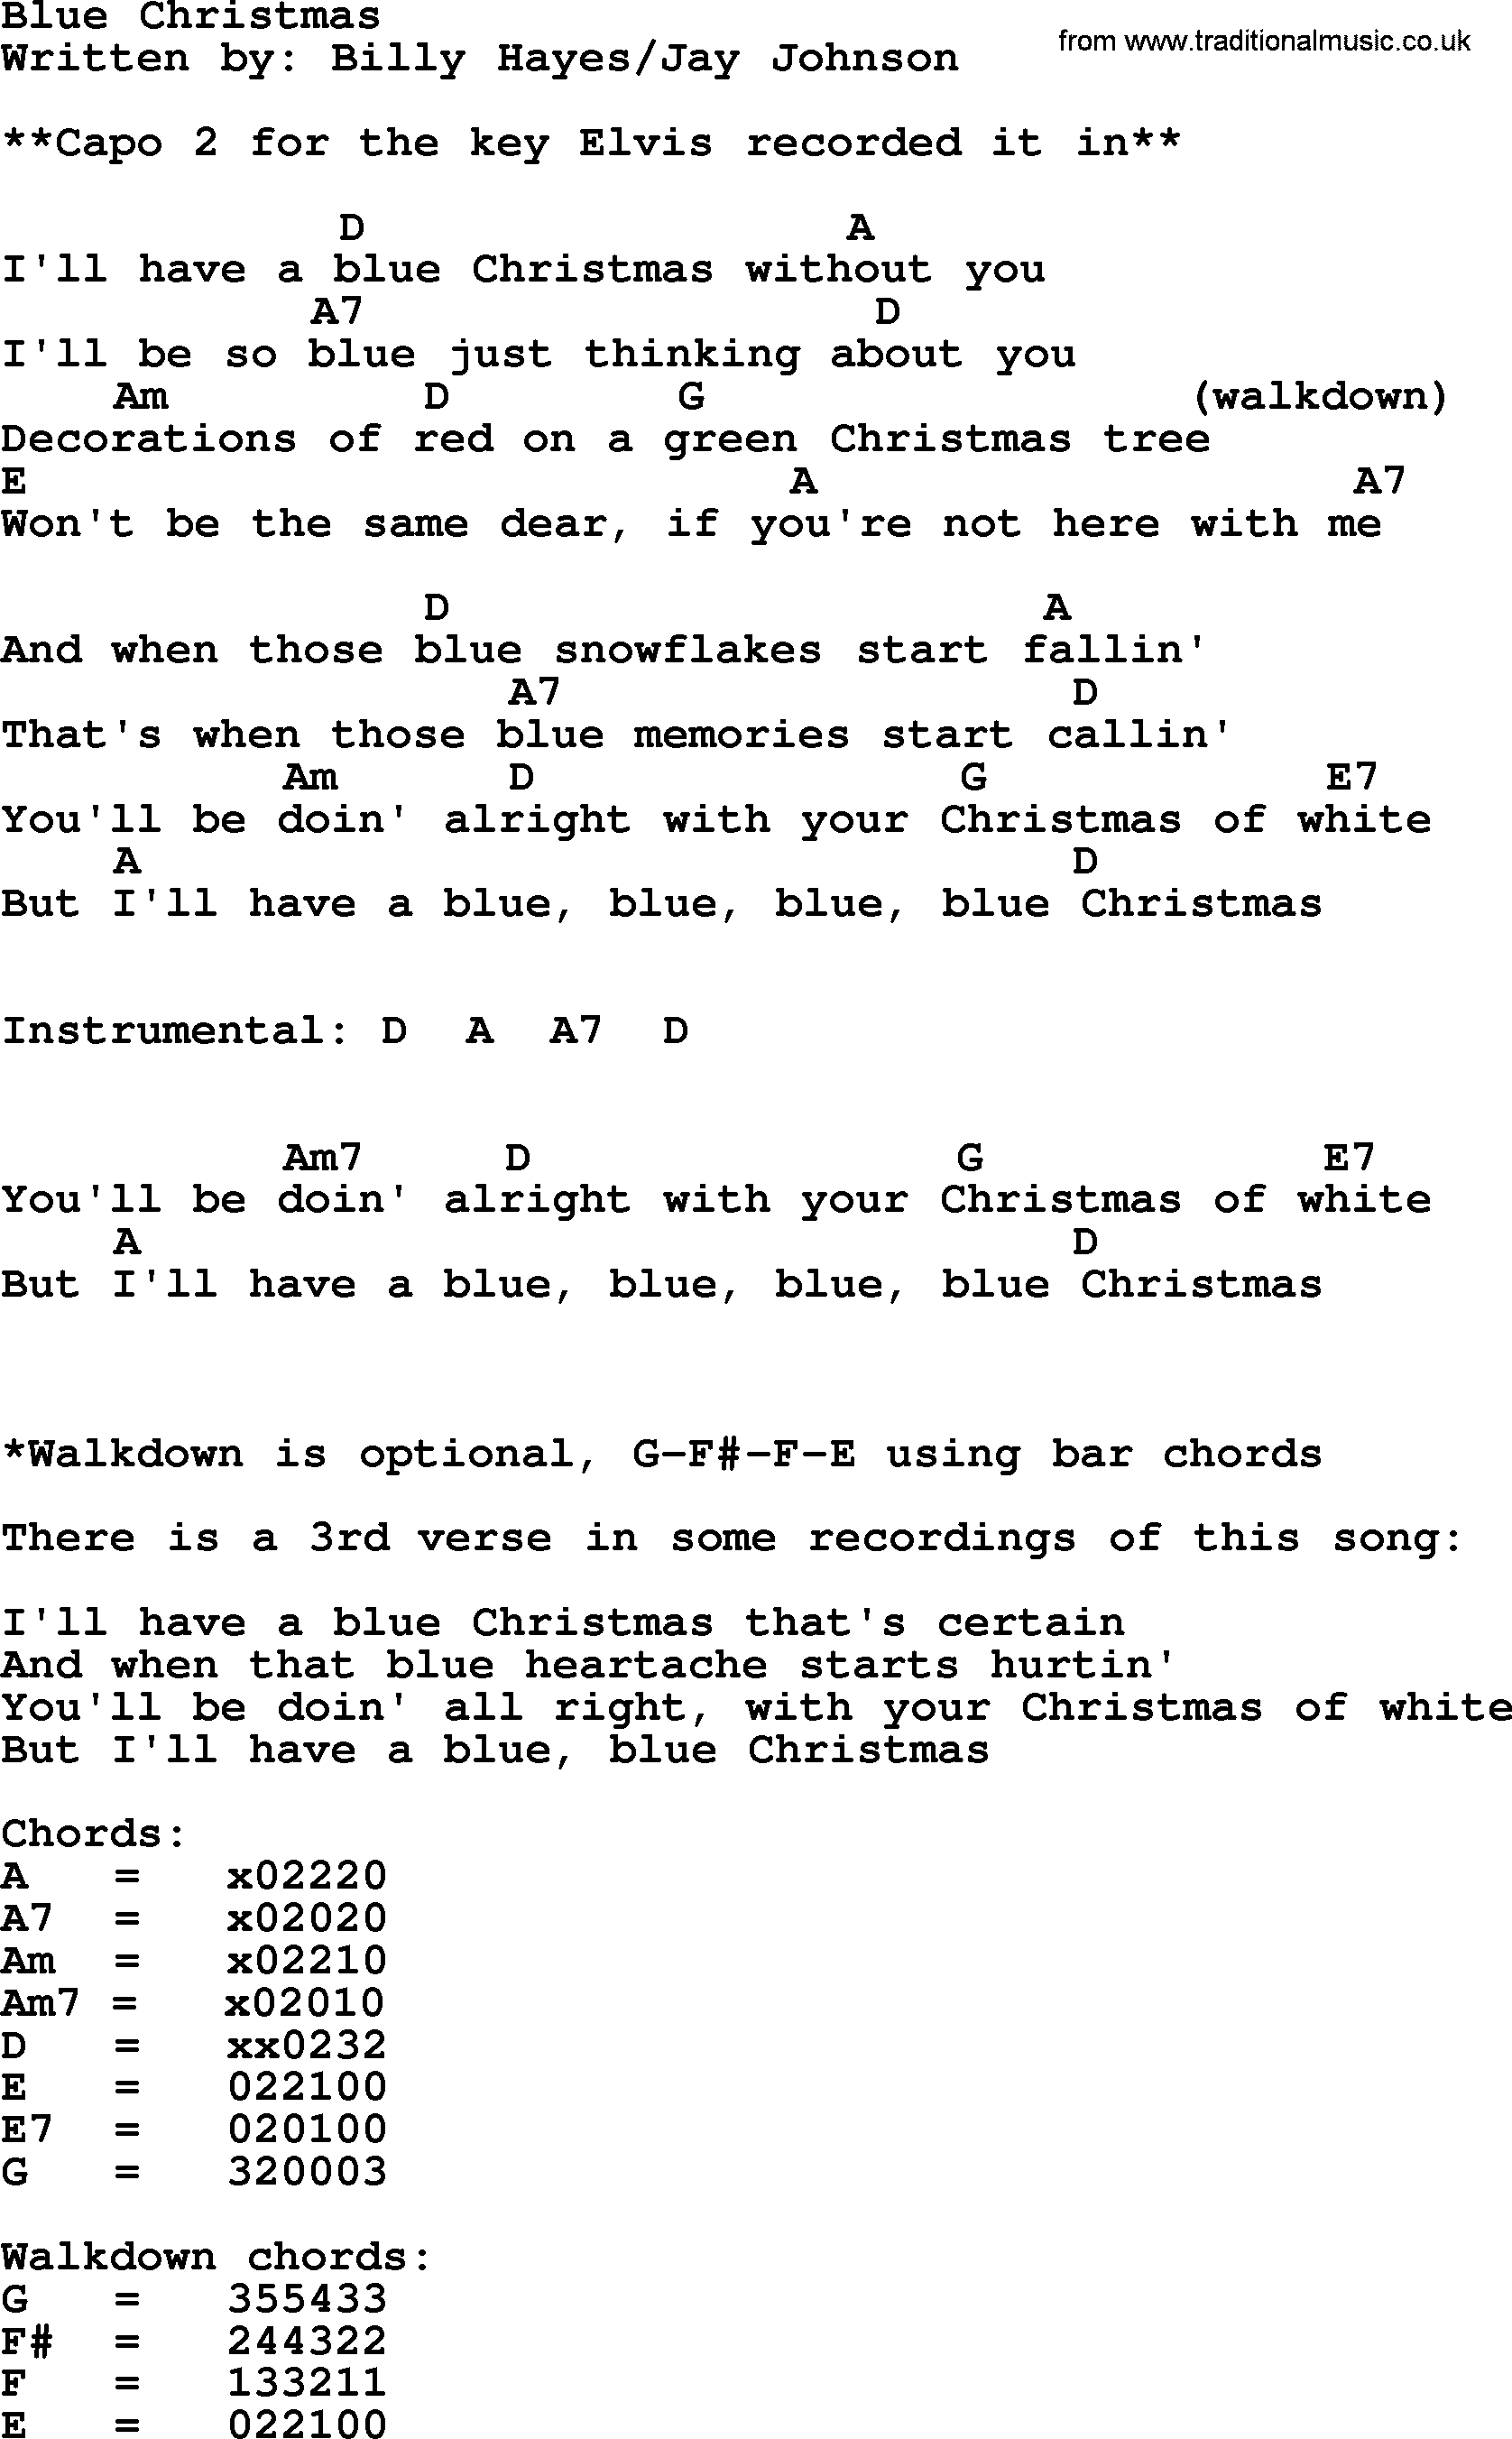 Blue Christmas Chords Blue Christmas Elvis Presley Lyrics And Chords